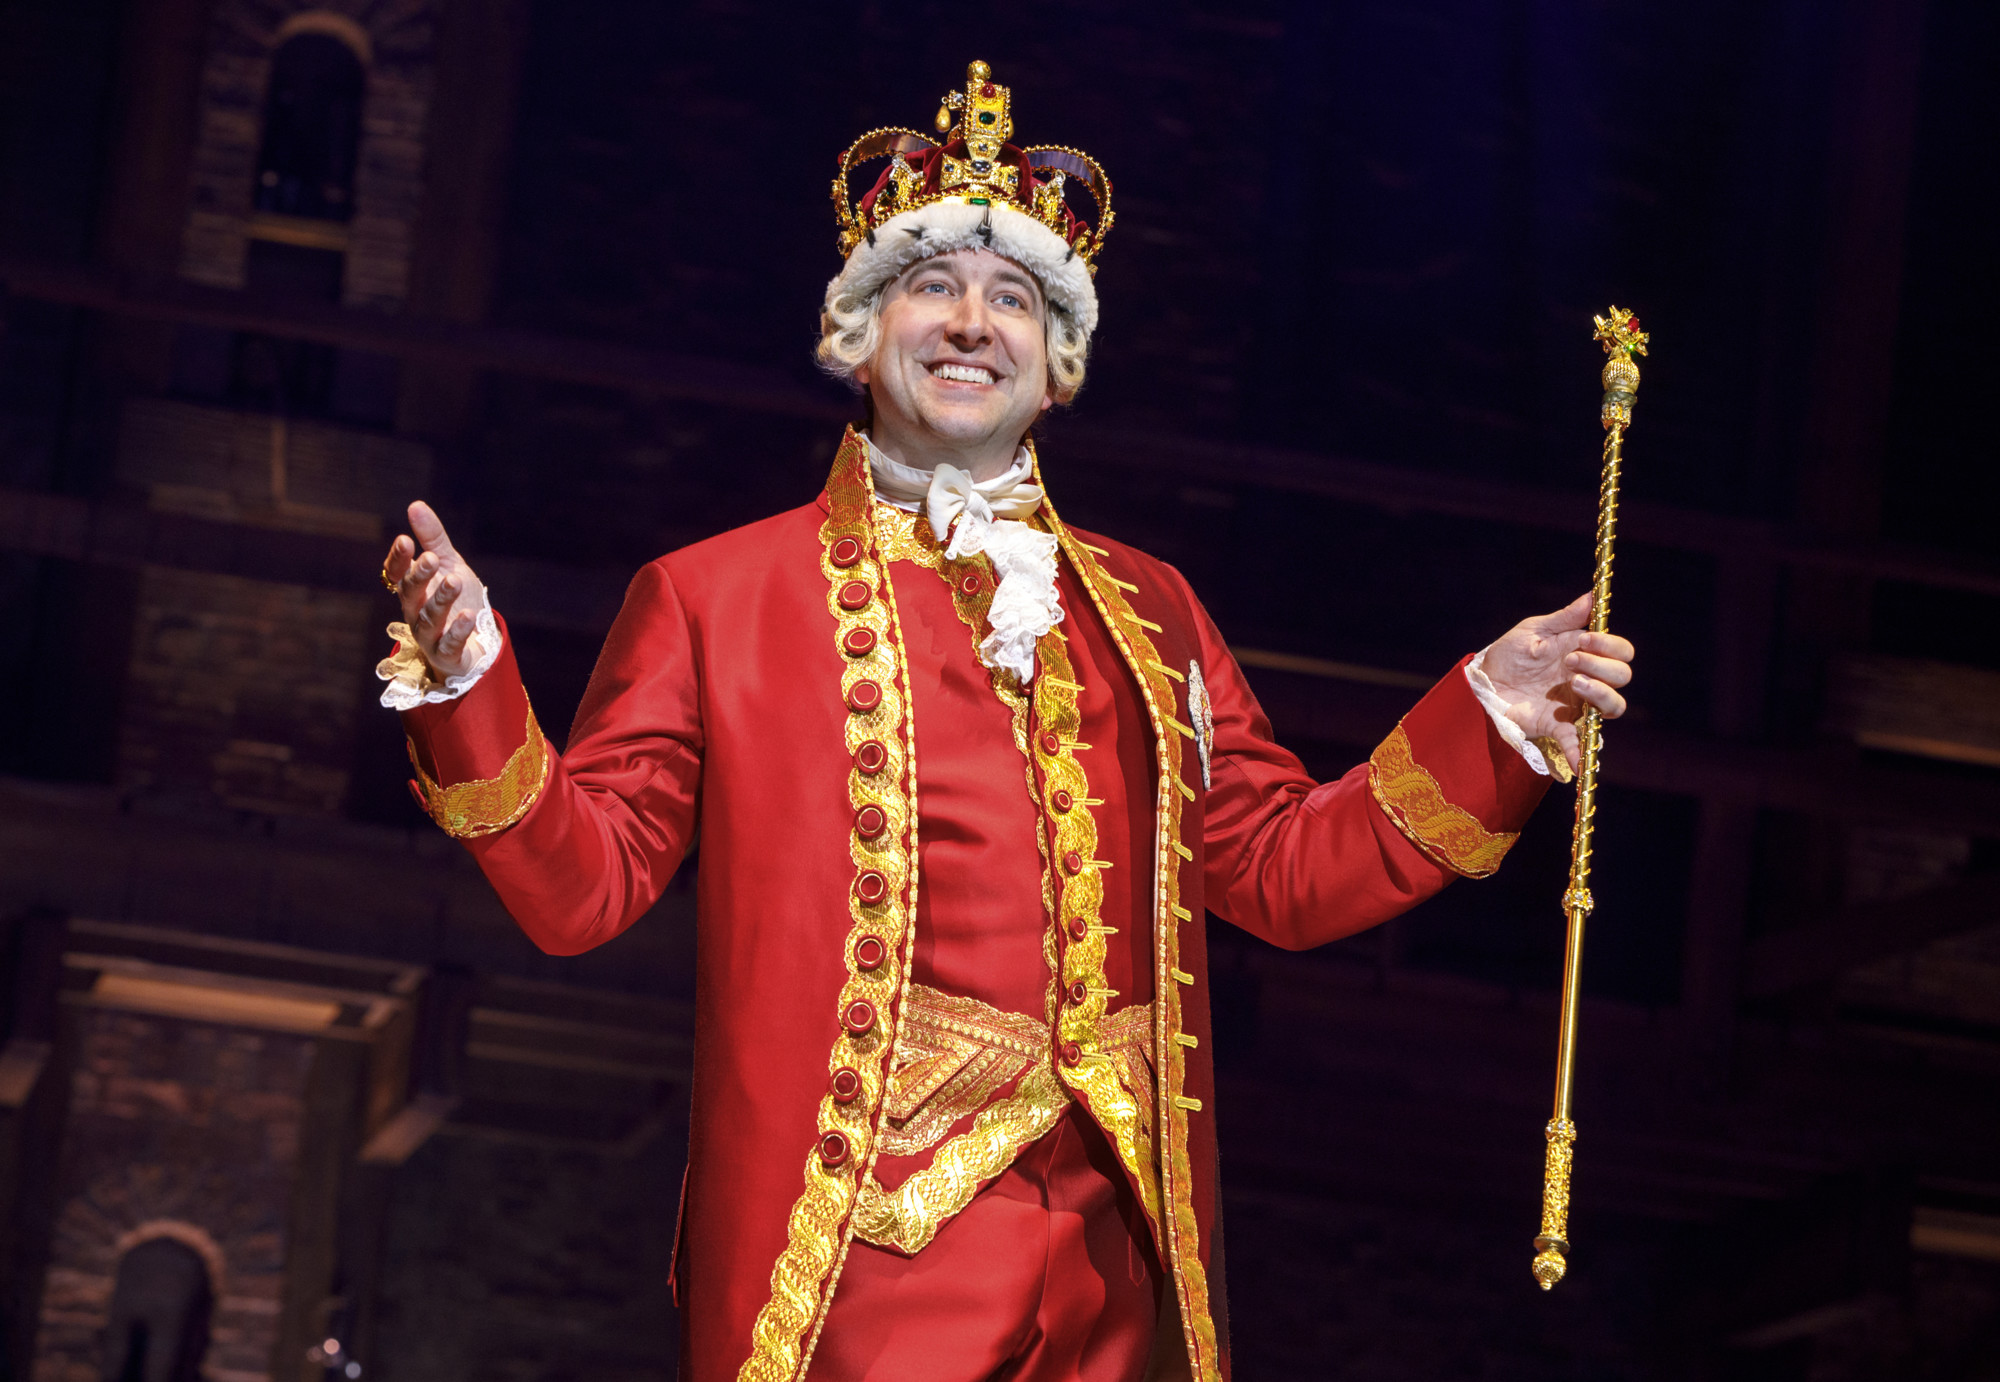 In 'Hamilton,' England's King George loses the war but has a great song—'You'll Be Back,' his deranged love song to the American colonies—and that's Pittsburgh native Peter Matthew Smith playing the King on the tour that visits us. (photo © Joan Marcus)